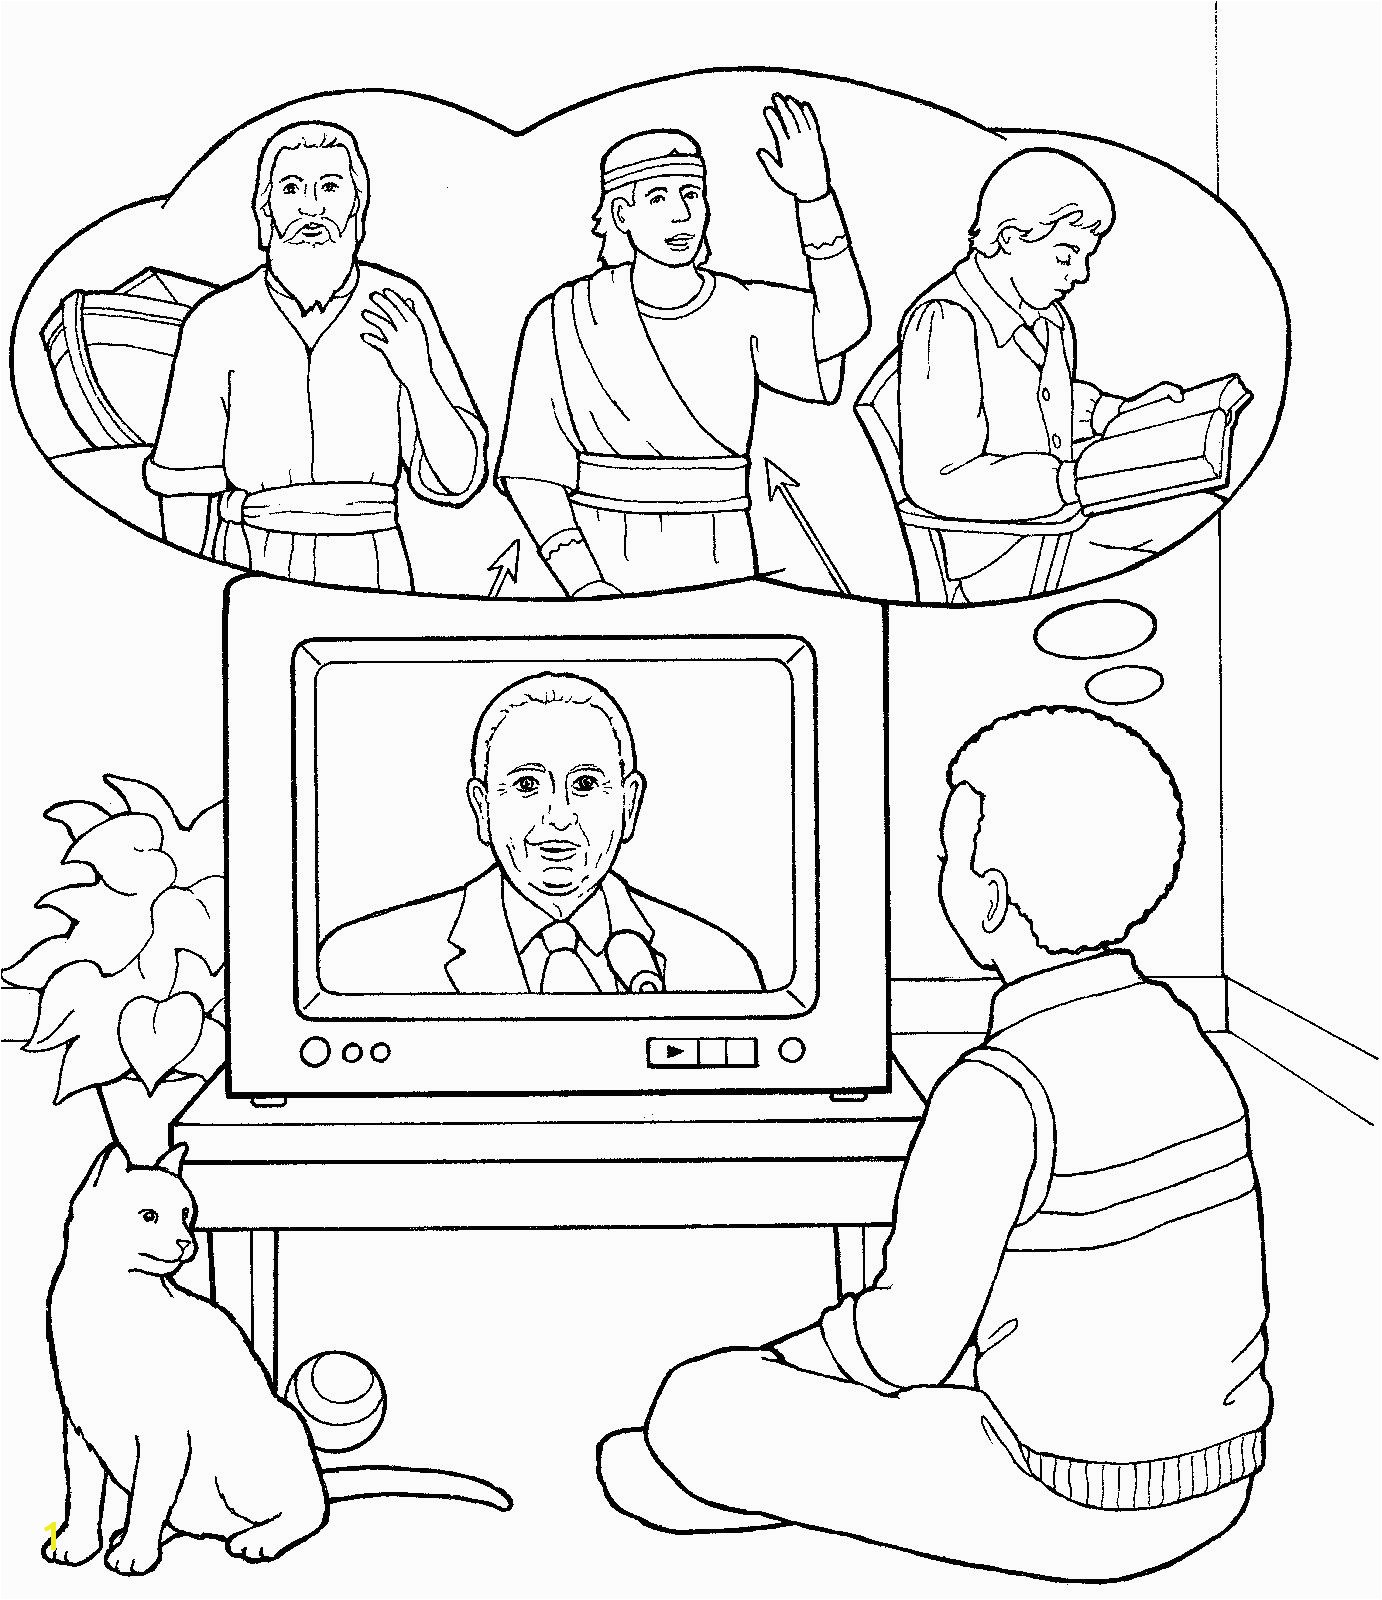 Monson during General Conference Children s Coloring Page from lds ldsprimary